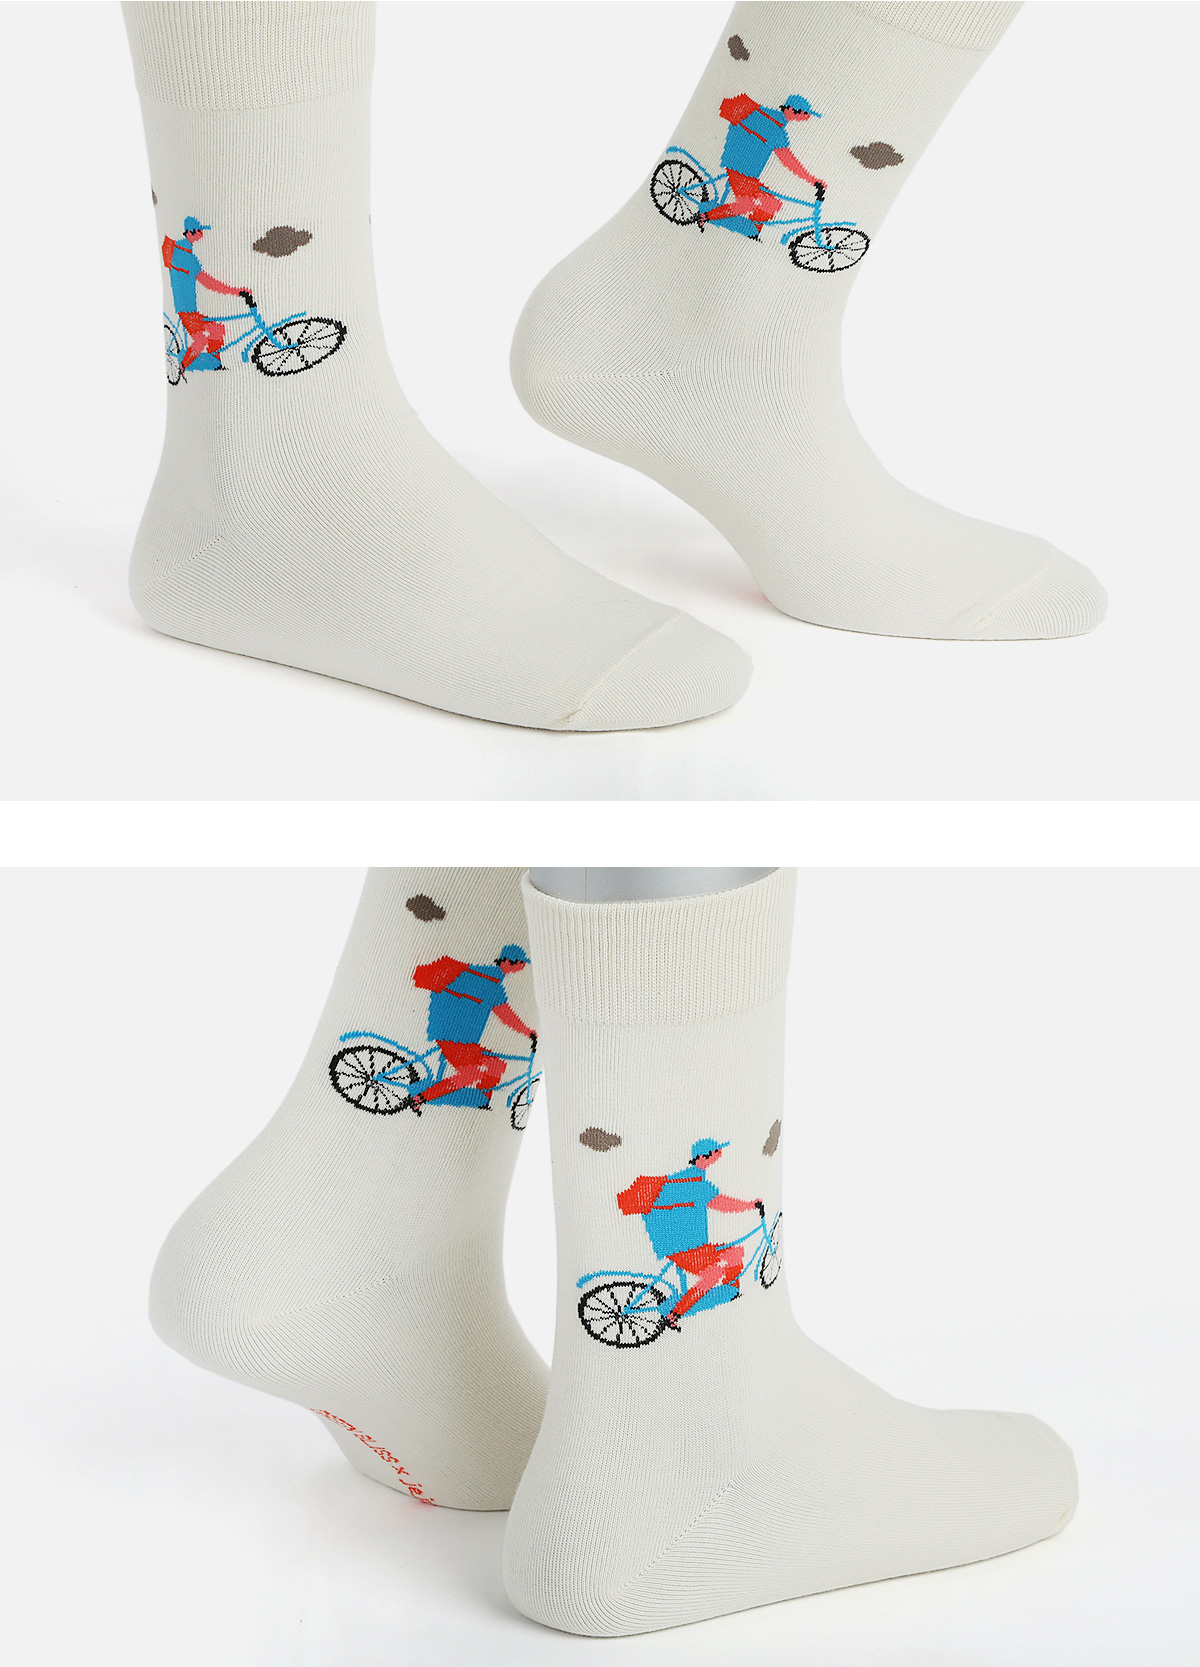 NABULBAE How to travel to Jeju 1 (Bicycle) socks